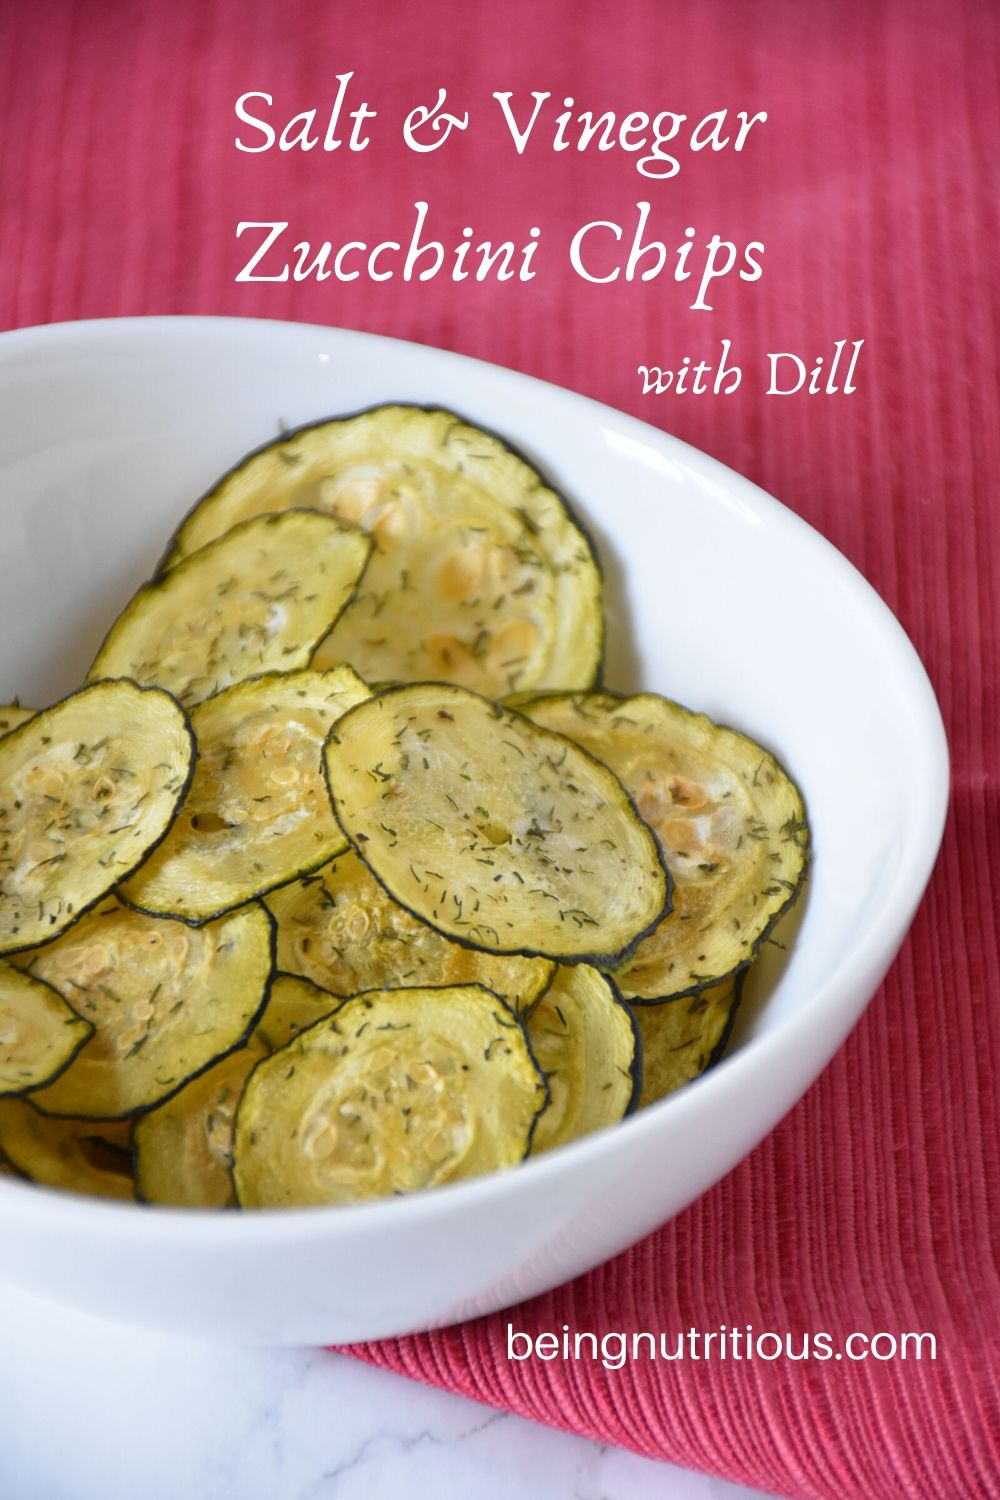 Zucchini chips in a white bowl with a red napkin under it.